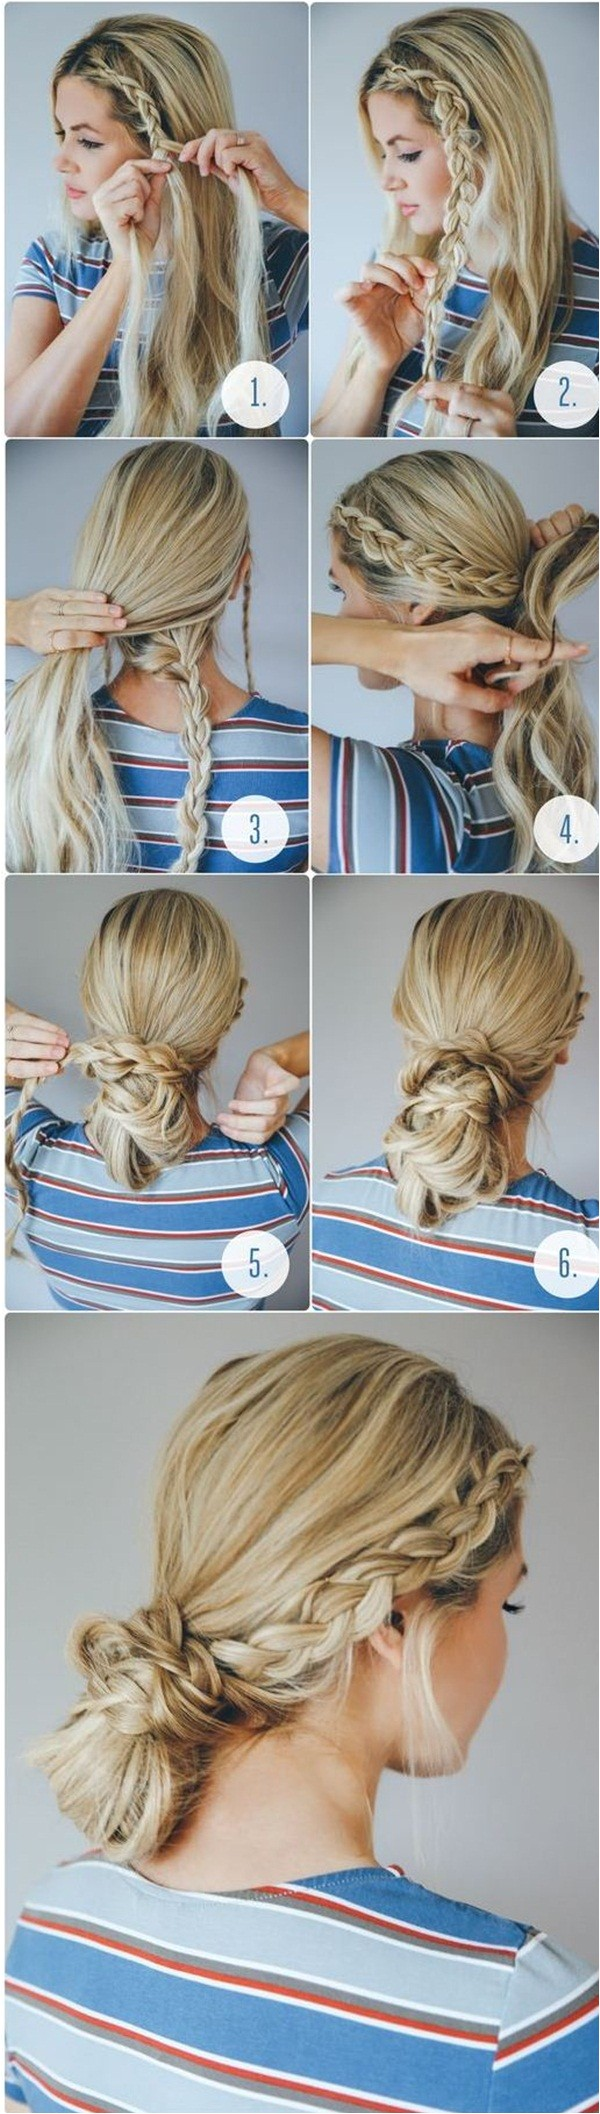 easy hairstyles schools try 2016